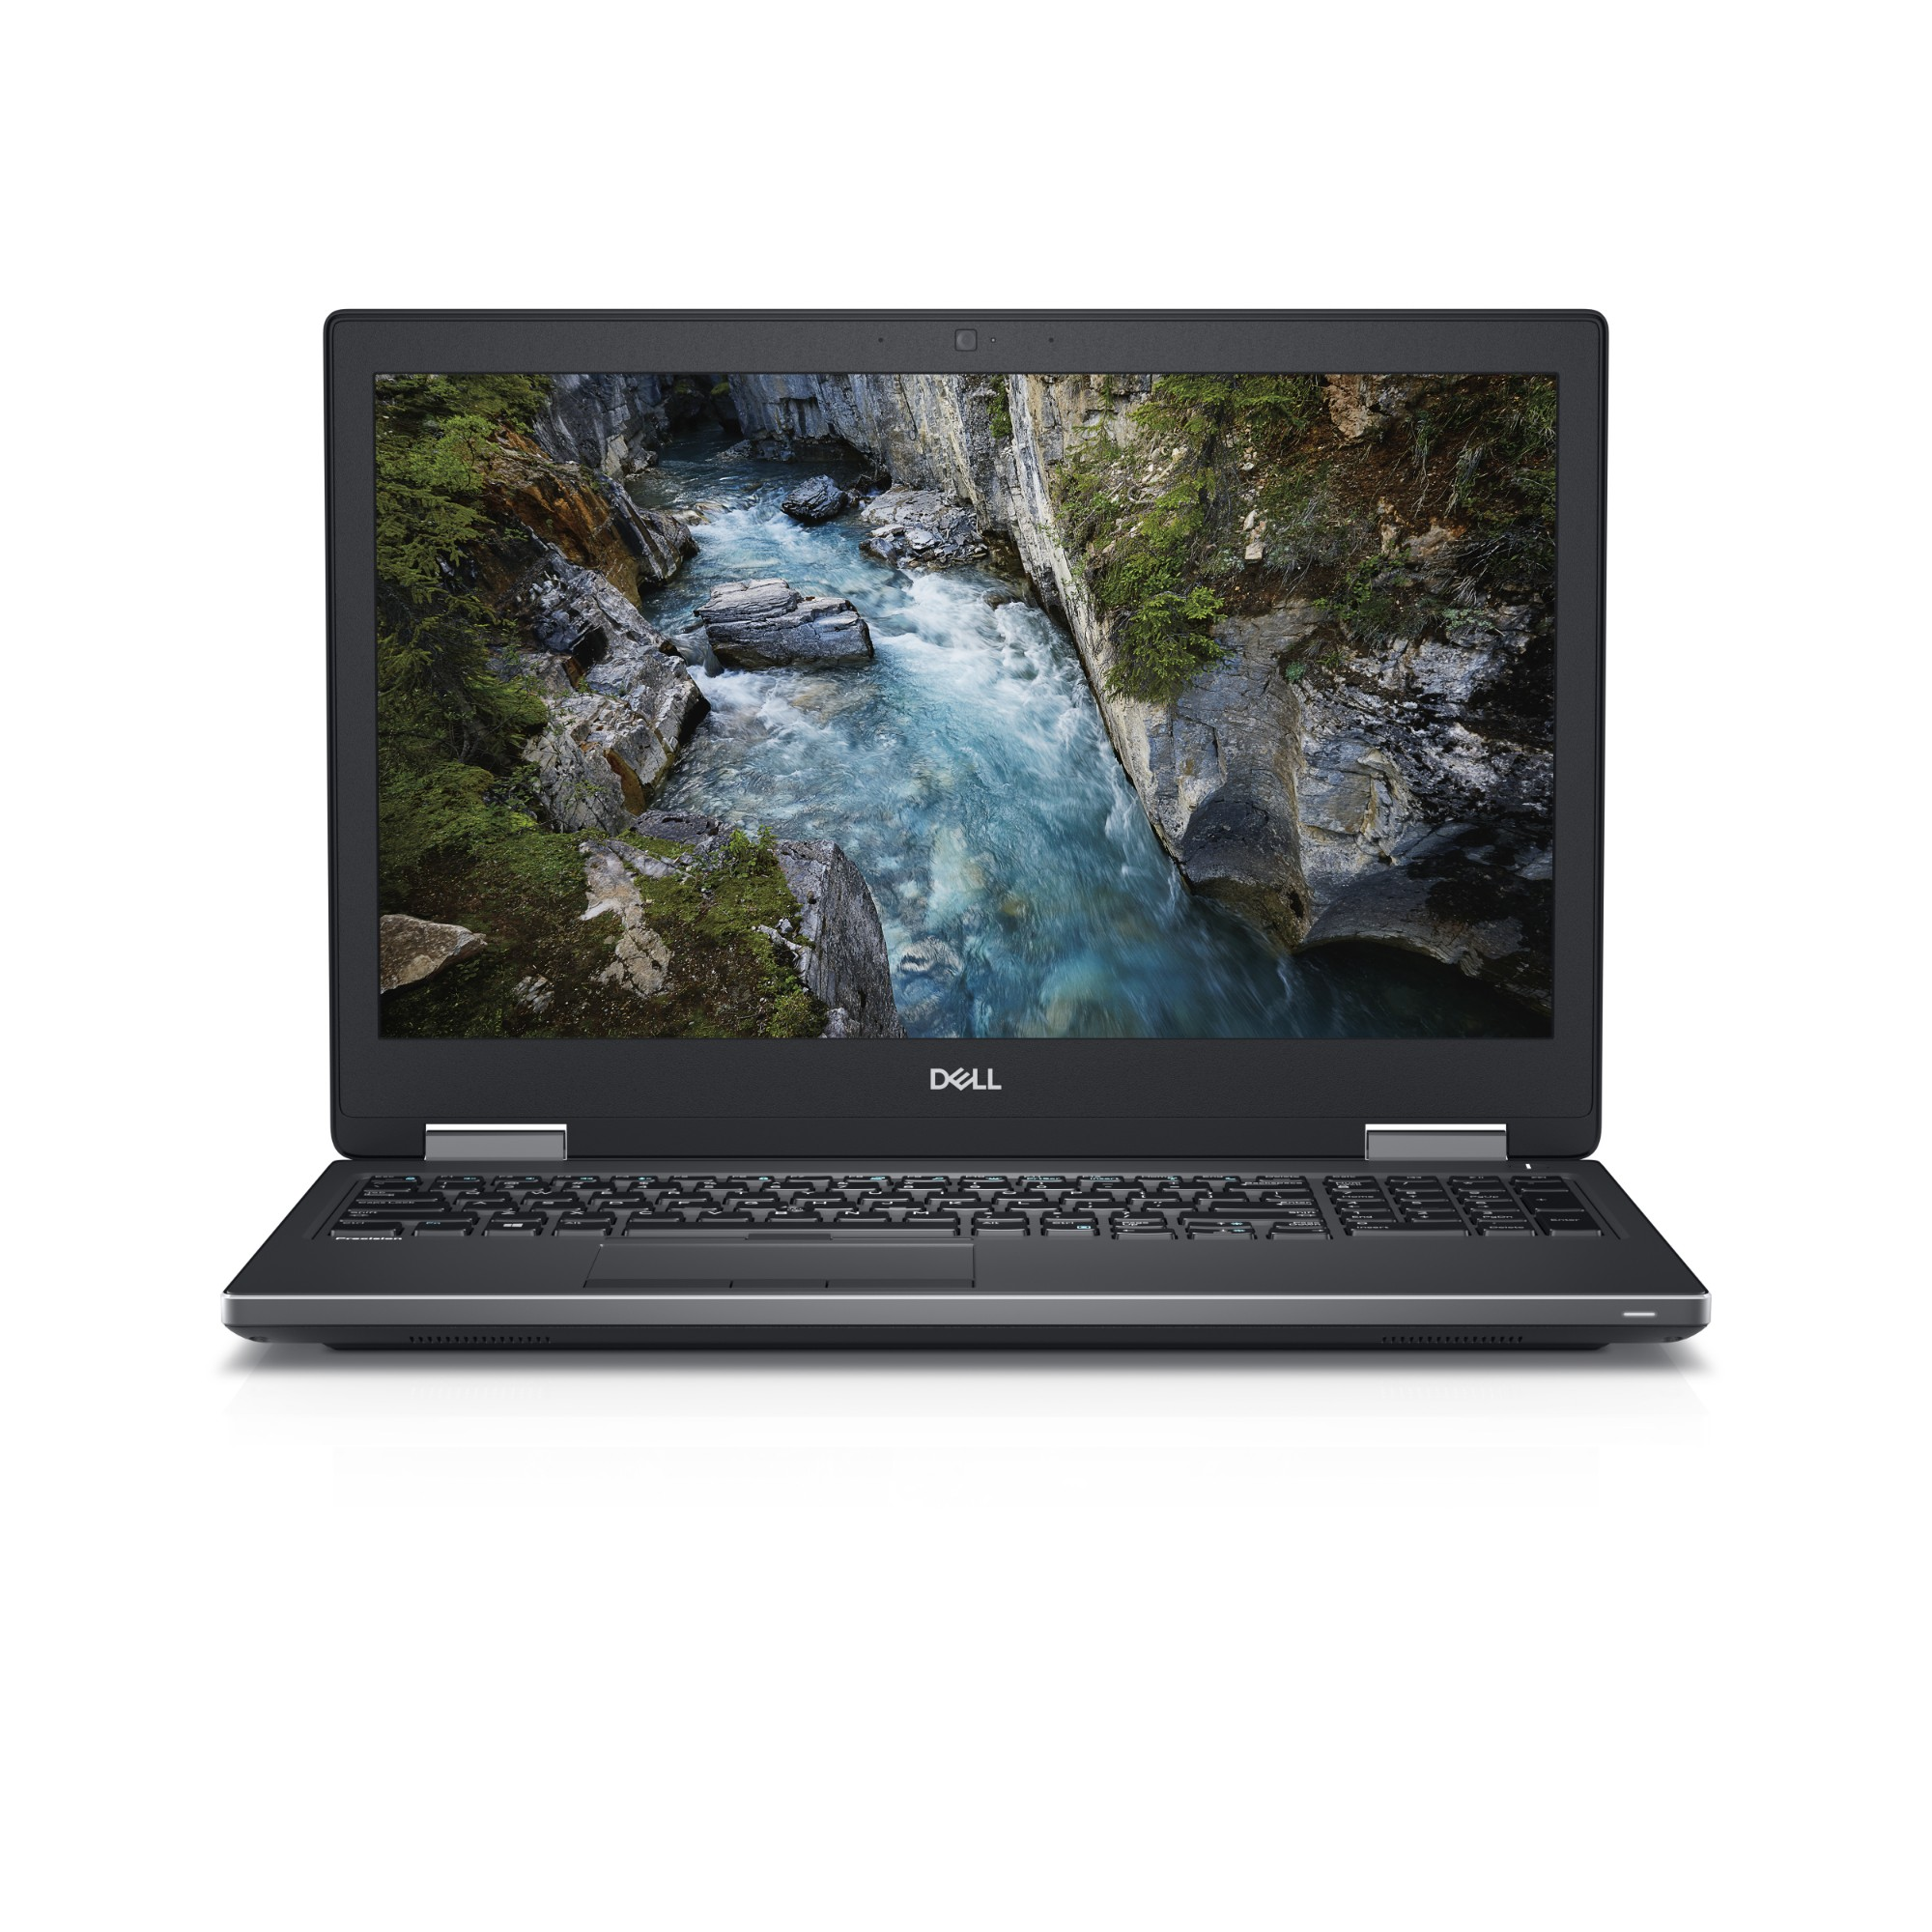 "DELL Precision 7530 Black Mobile workstation 39.6 cm (15.6"") 1920 x 1080 pixels 2.60 GHz 8th gen Intel® Core™ i7 i7-8850H"